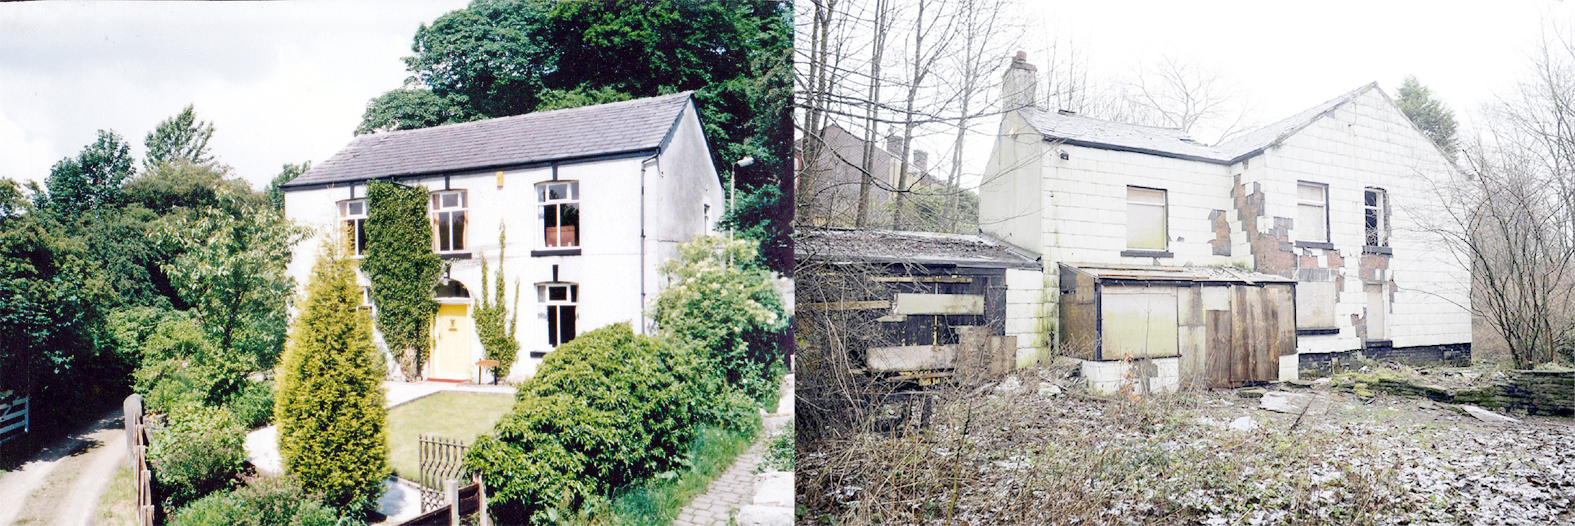 Plea to save historic Ivy Cottage in Smithills - Oliver Cromwell's civil war base